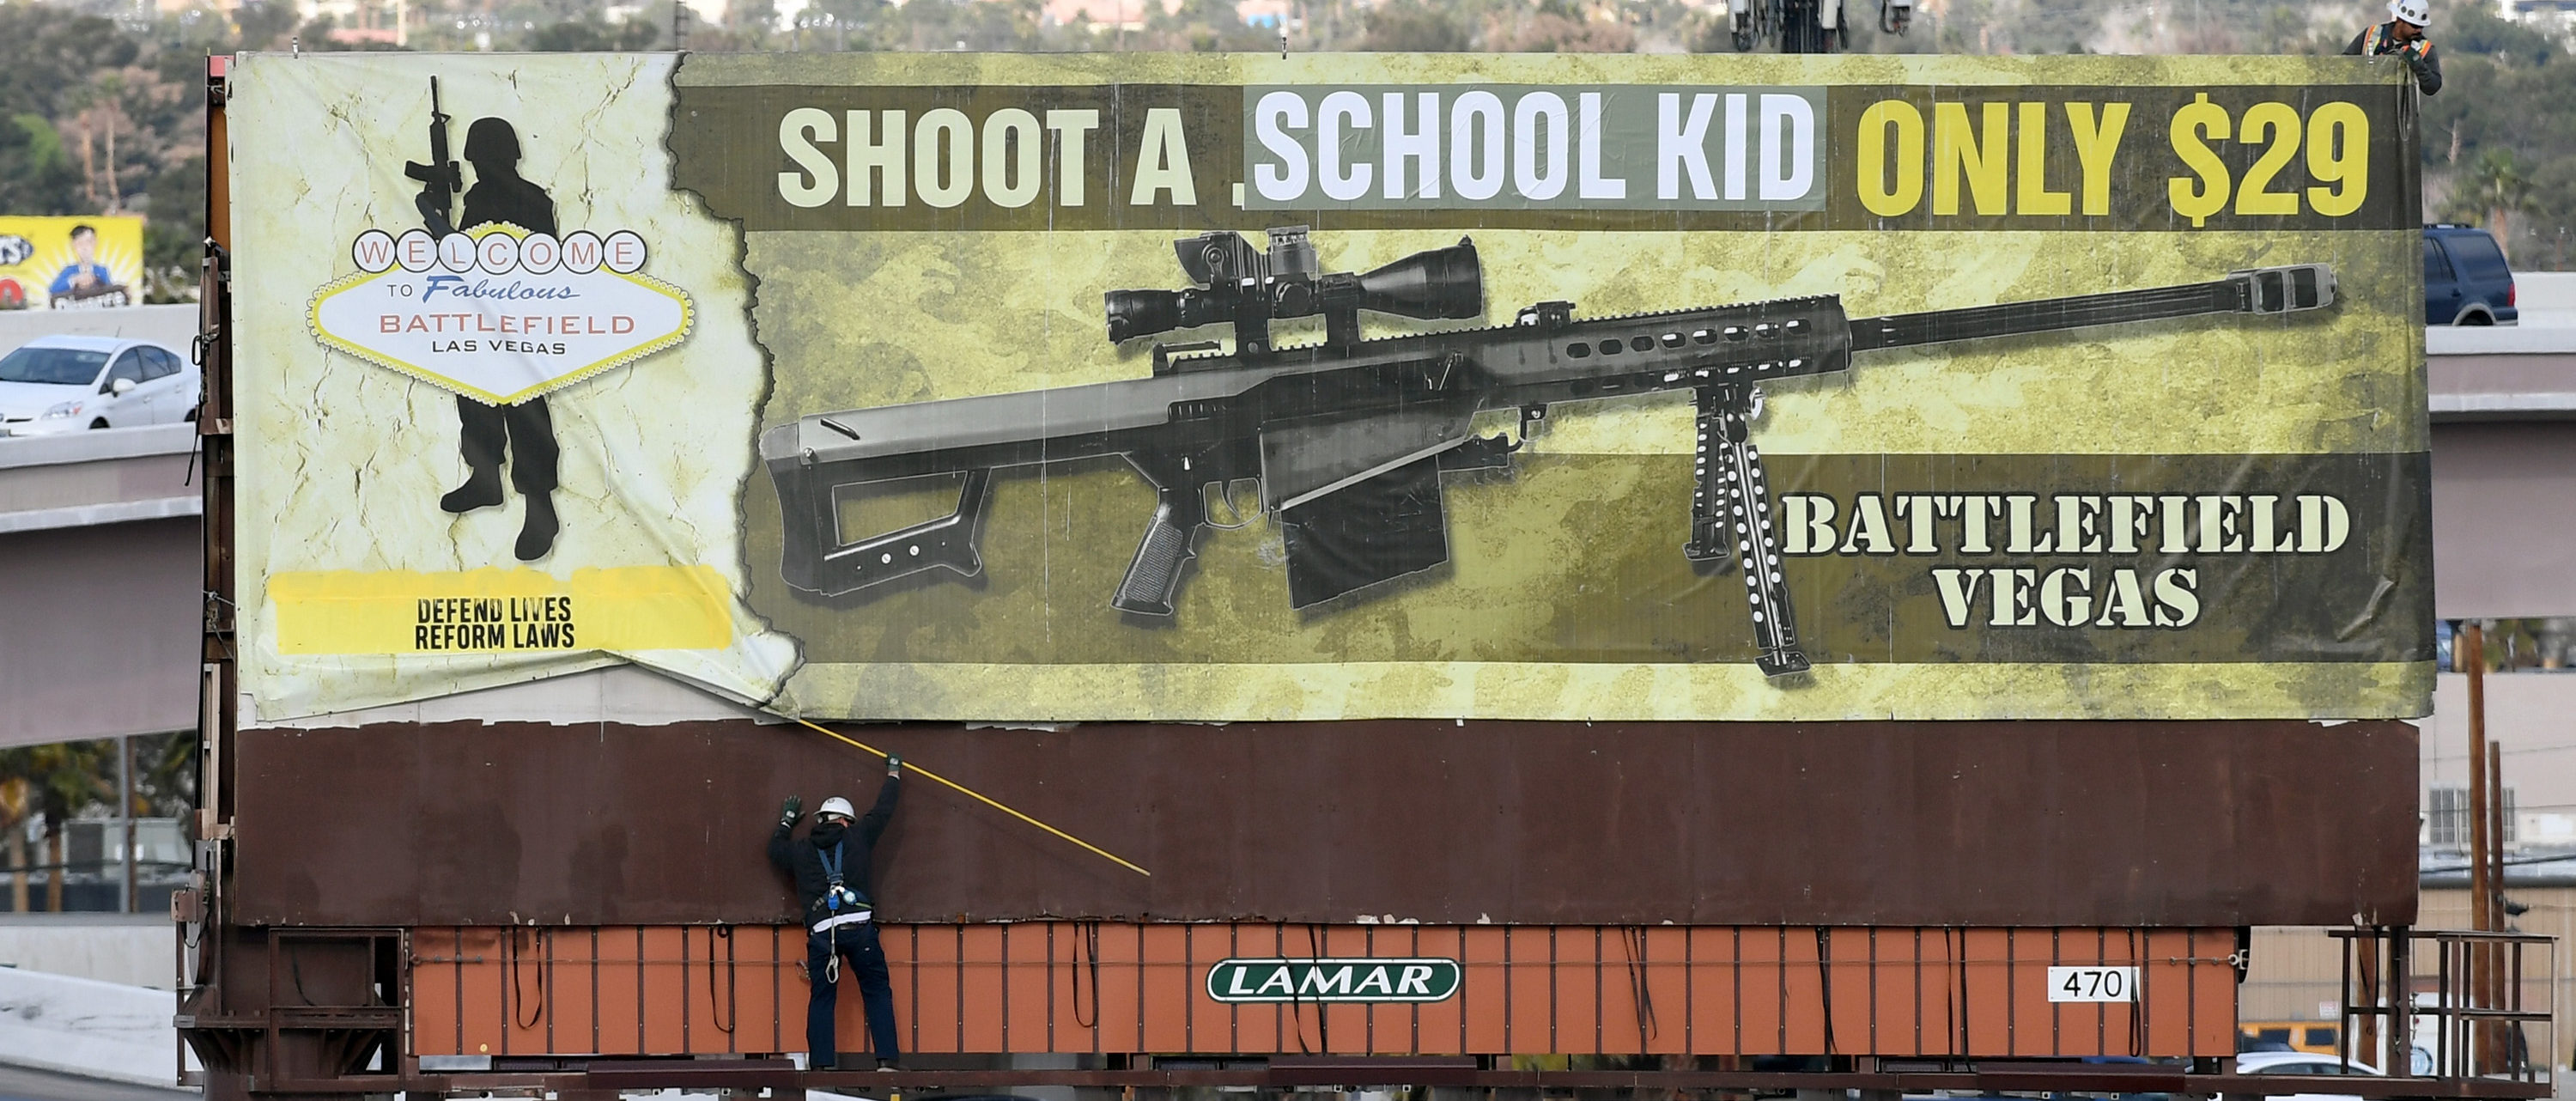 A Billboard with an anti-gun message March 1, 2018 in Las Vegas, Nevada. (Photo by Ethan Miller/Getty Images)